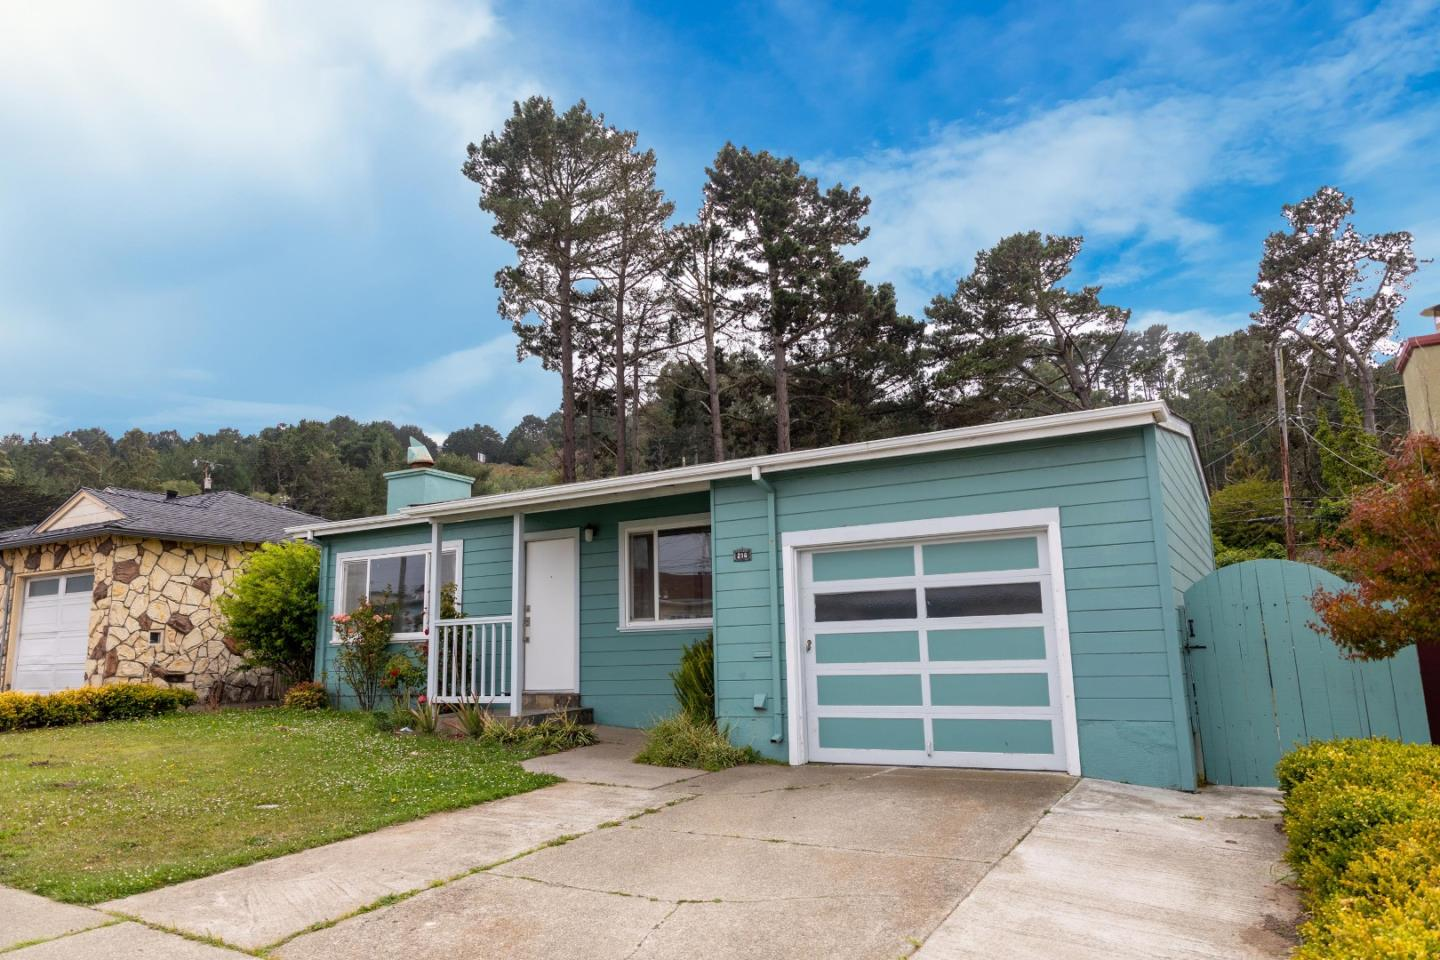 Spacious and bright 3bd/1ba home located in a quiet and highly desirable neighborhood in South San Francisco, conveniently located nearby I-280/101 for an easy commute to SF & Silicon Valley. The single-story home features an open format layout w/ large picture windows that let in an abundance of natural light. As you enter, find a large living room complete w/ a wood-burning fireplace that flows effortlessly into the dining space - creating the perfect place to host friends & family or for a cozy night in. The dining space opens into the updated kitchen that features a gas range stove, double door refrigerator, & plenty of cabinet space. The three bedrooms are of ample size w/ sizeable closets, large windows, & updated light fixtures. The bathroom features a shower over tub, vanity mirror, & lighting. A large backyard w/ a bonus shed for storage included. Attached one car garage w/ a washer and dryer. Fresh interior paint throughout. Dont miss out on this one-of-a-kind gem!